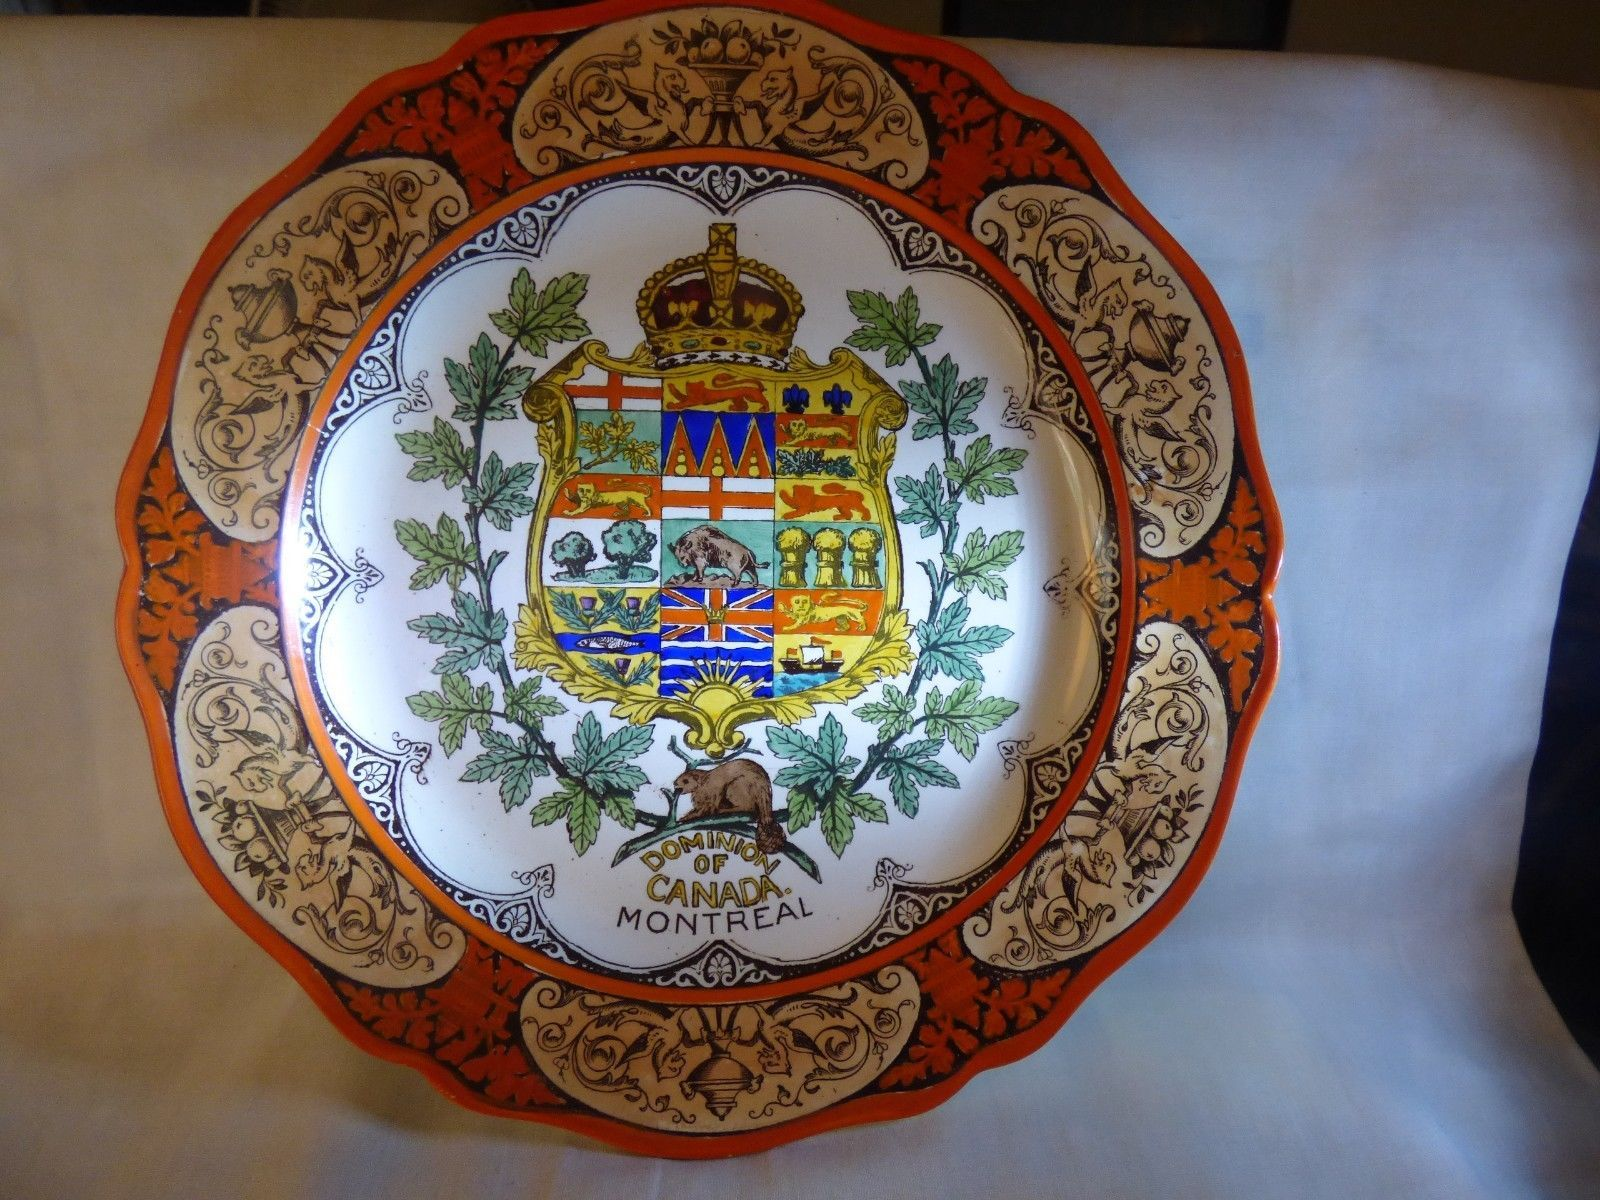 "1911 Wedgwood Etruria Dominion of Canada Montreal 10"" Plate Hand Painted Orange image 1"